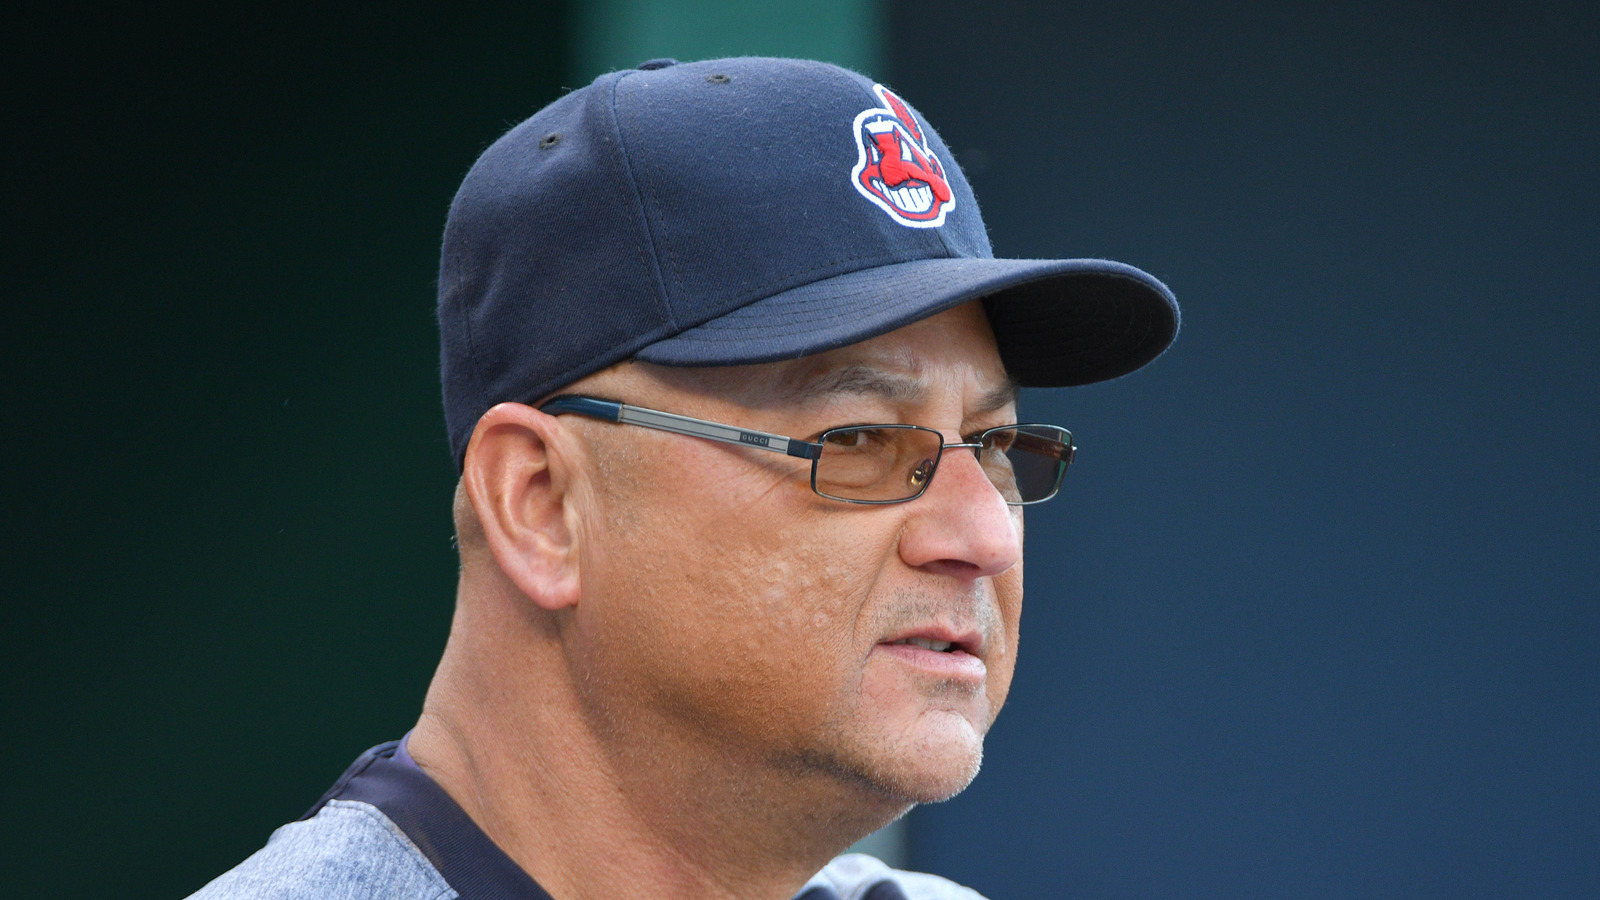 Terry Francona continues to undergo tests at the Cleveland Clinic